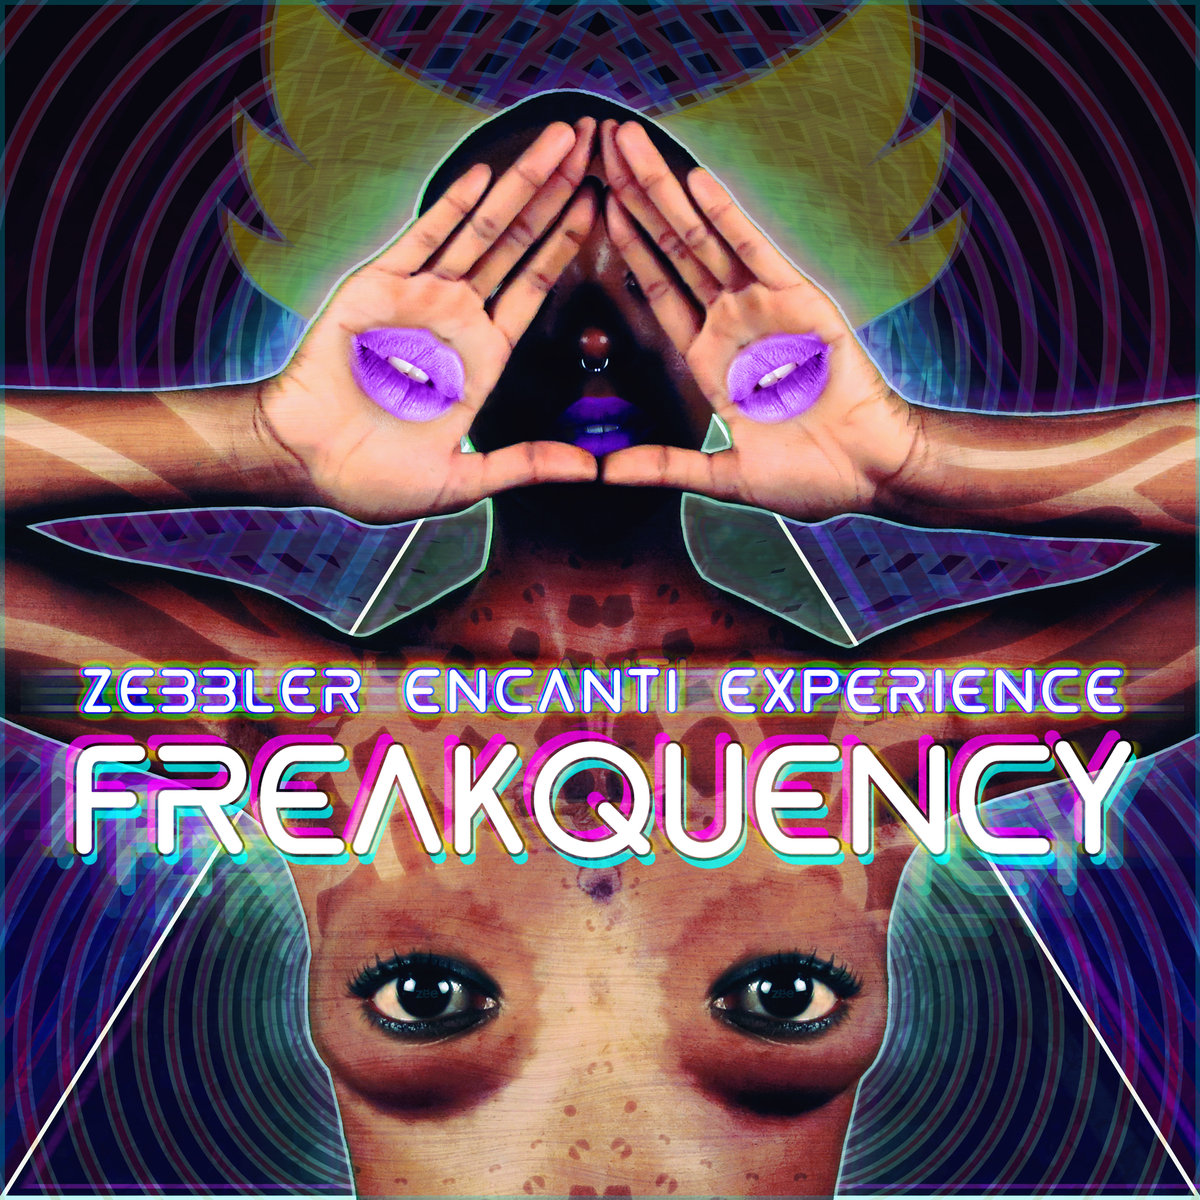 Zebbler Encanti Experience - Neuron Dialect @ 'Freakquency' album (boston, psychedelic)